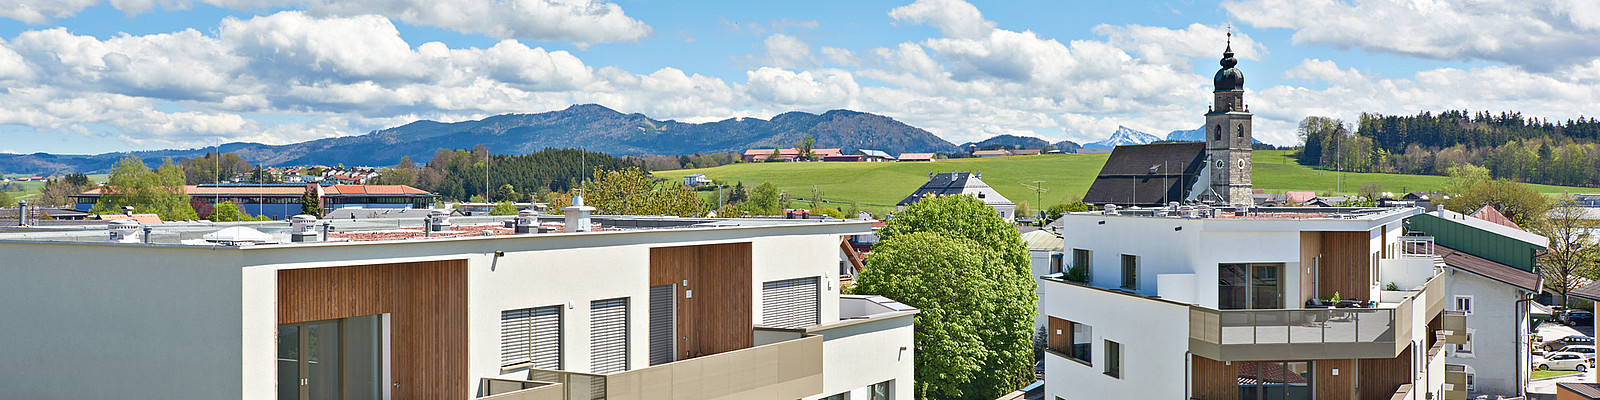 Winklhof6 Immobilien in Seekirchen